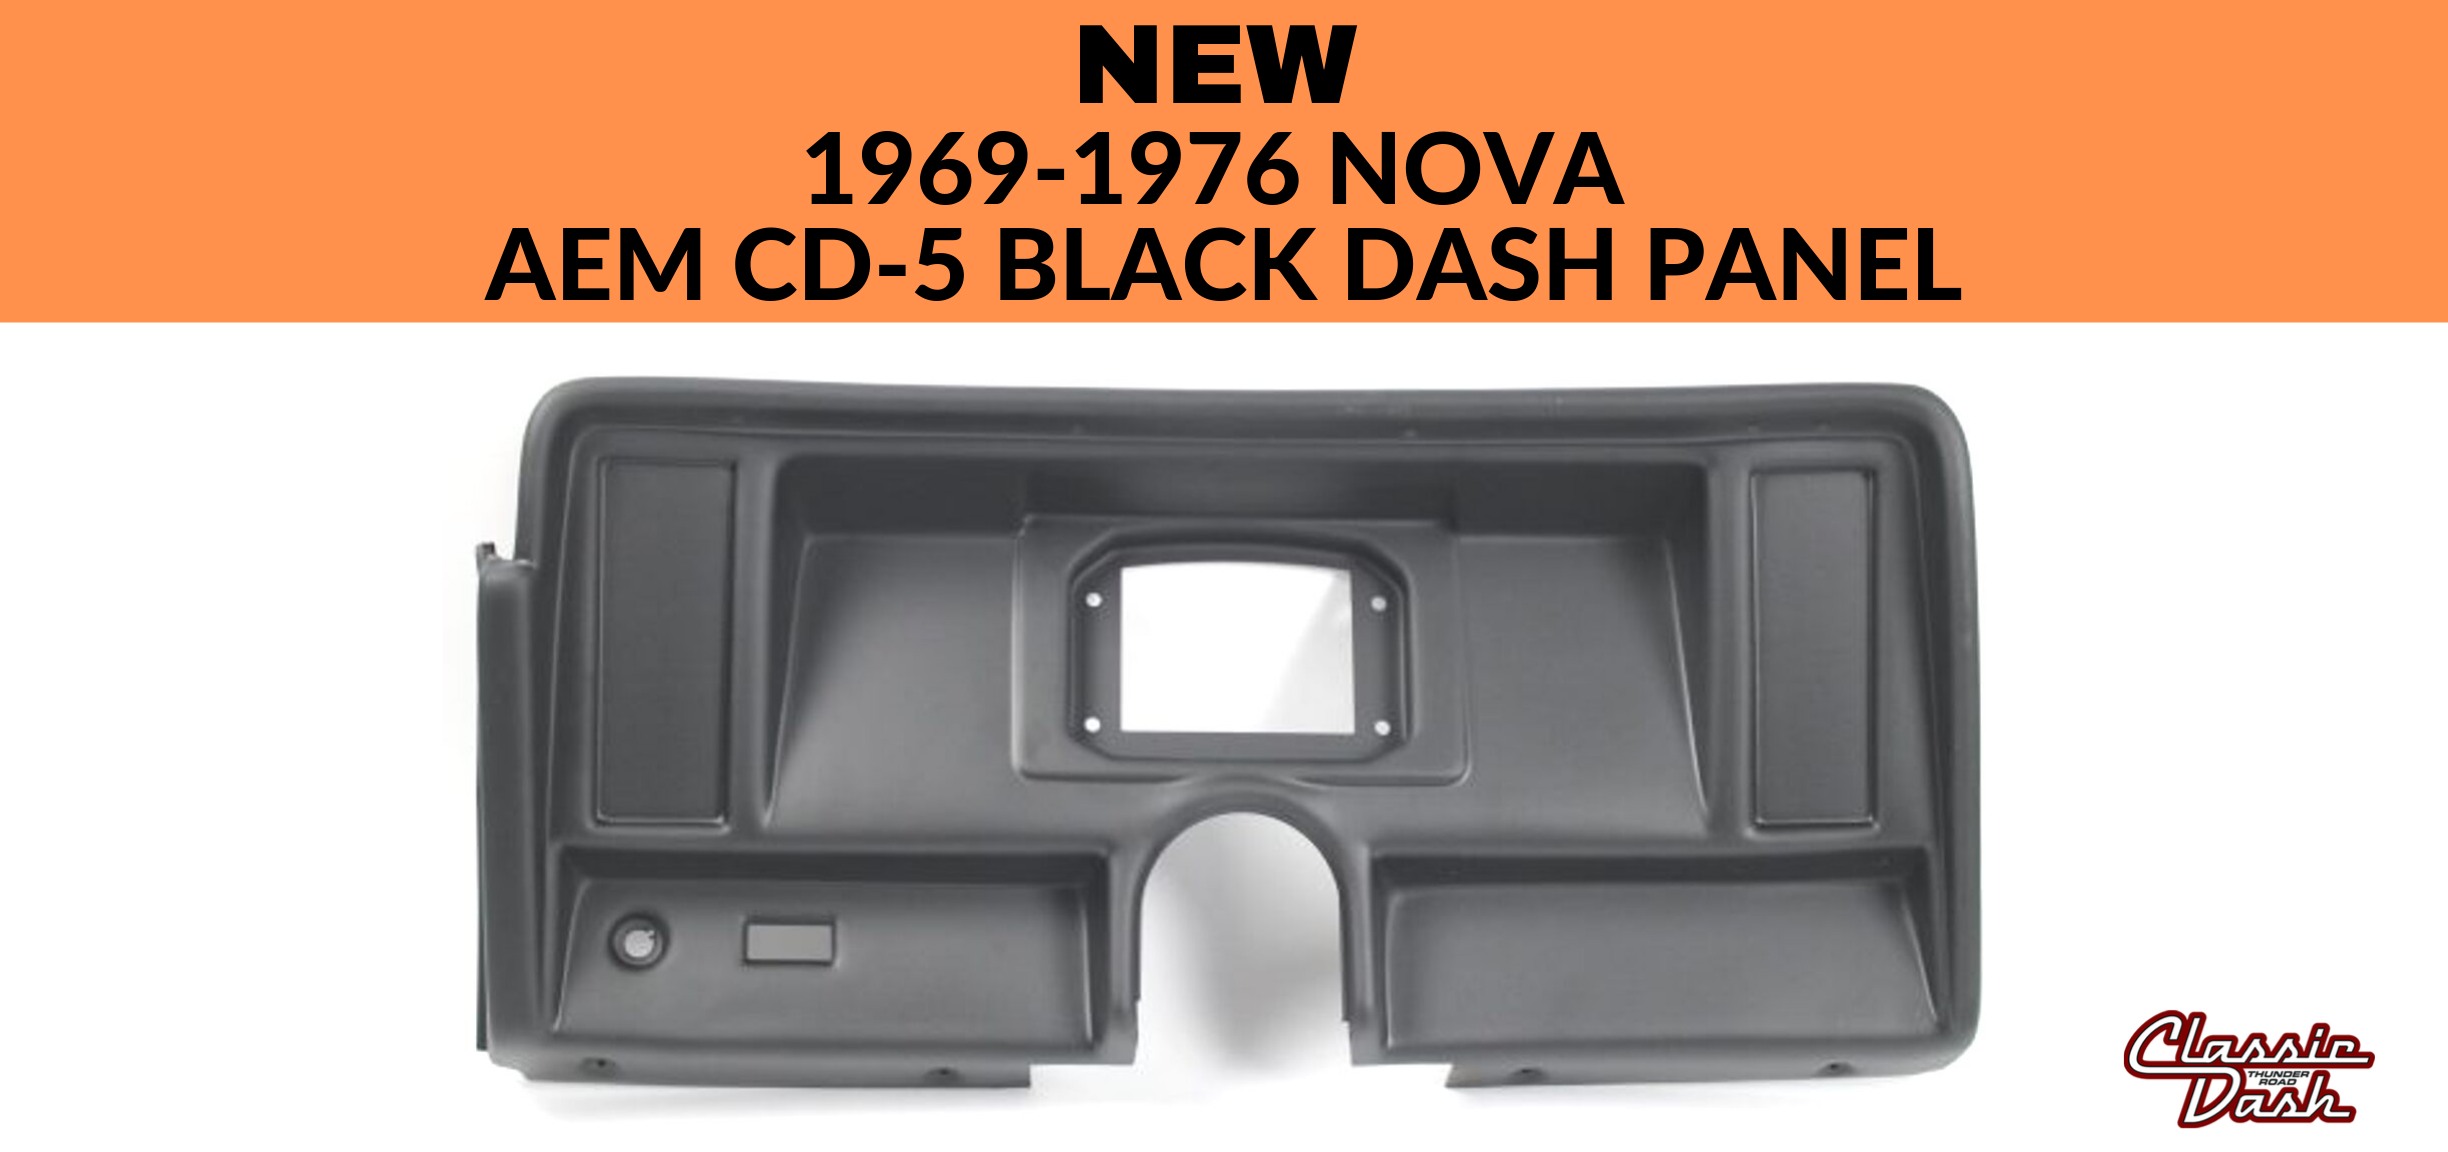 1969-1976 Nova AEM CD-5 Black Dash Panel